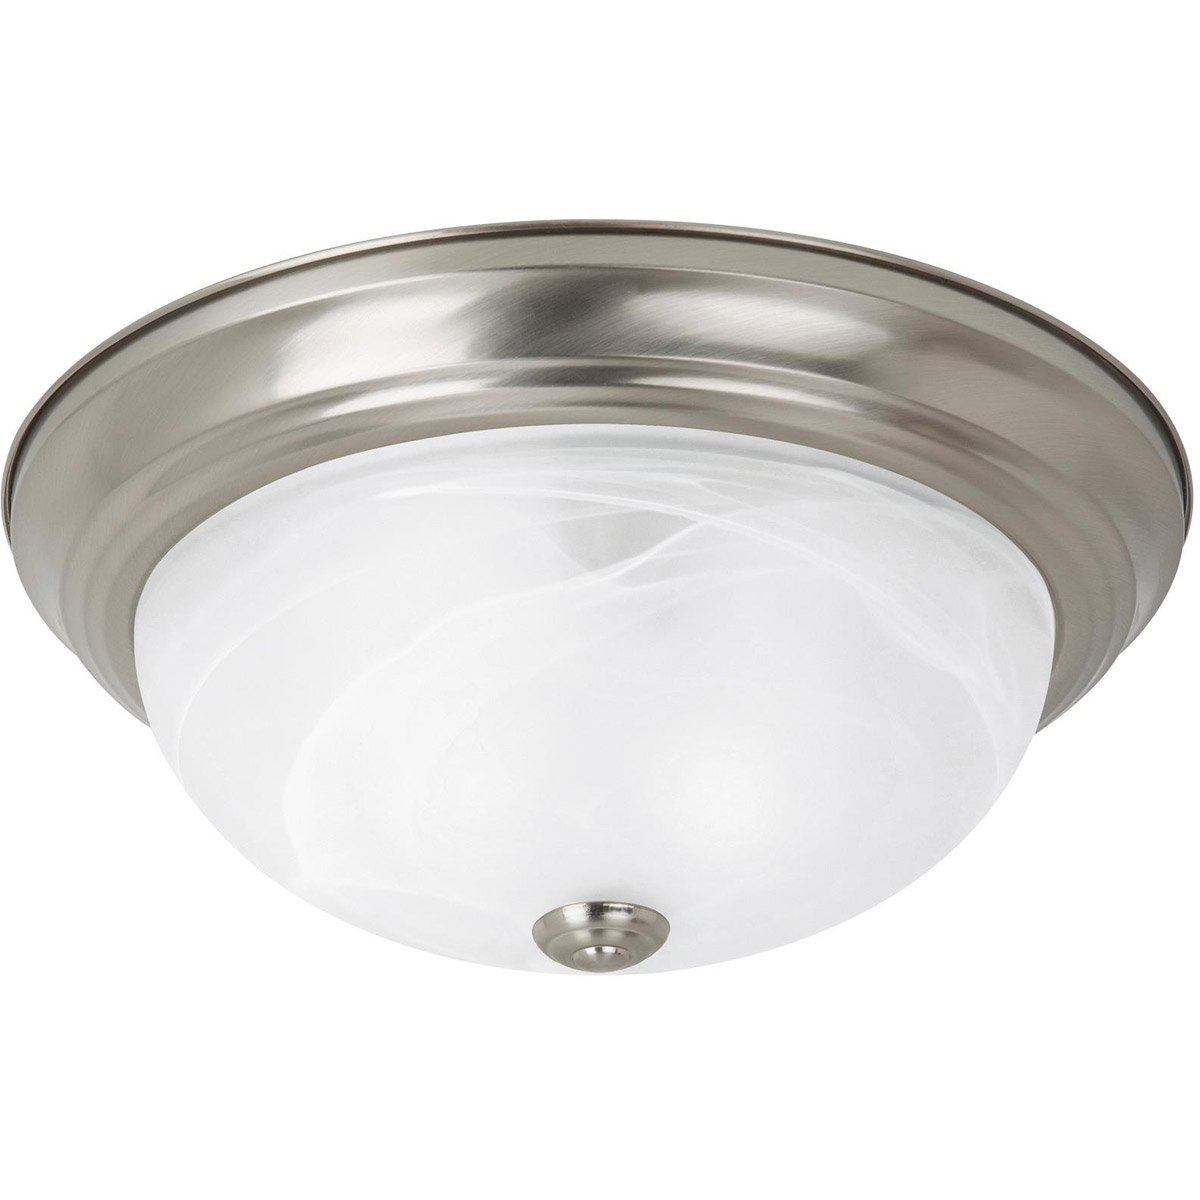 Sea Gull Lighting Windgate 2 Light Flush Mount in Brushed Nickel 75942-962